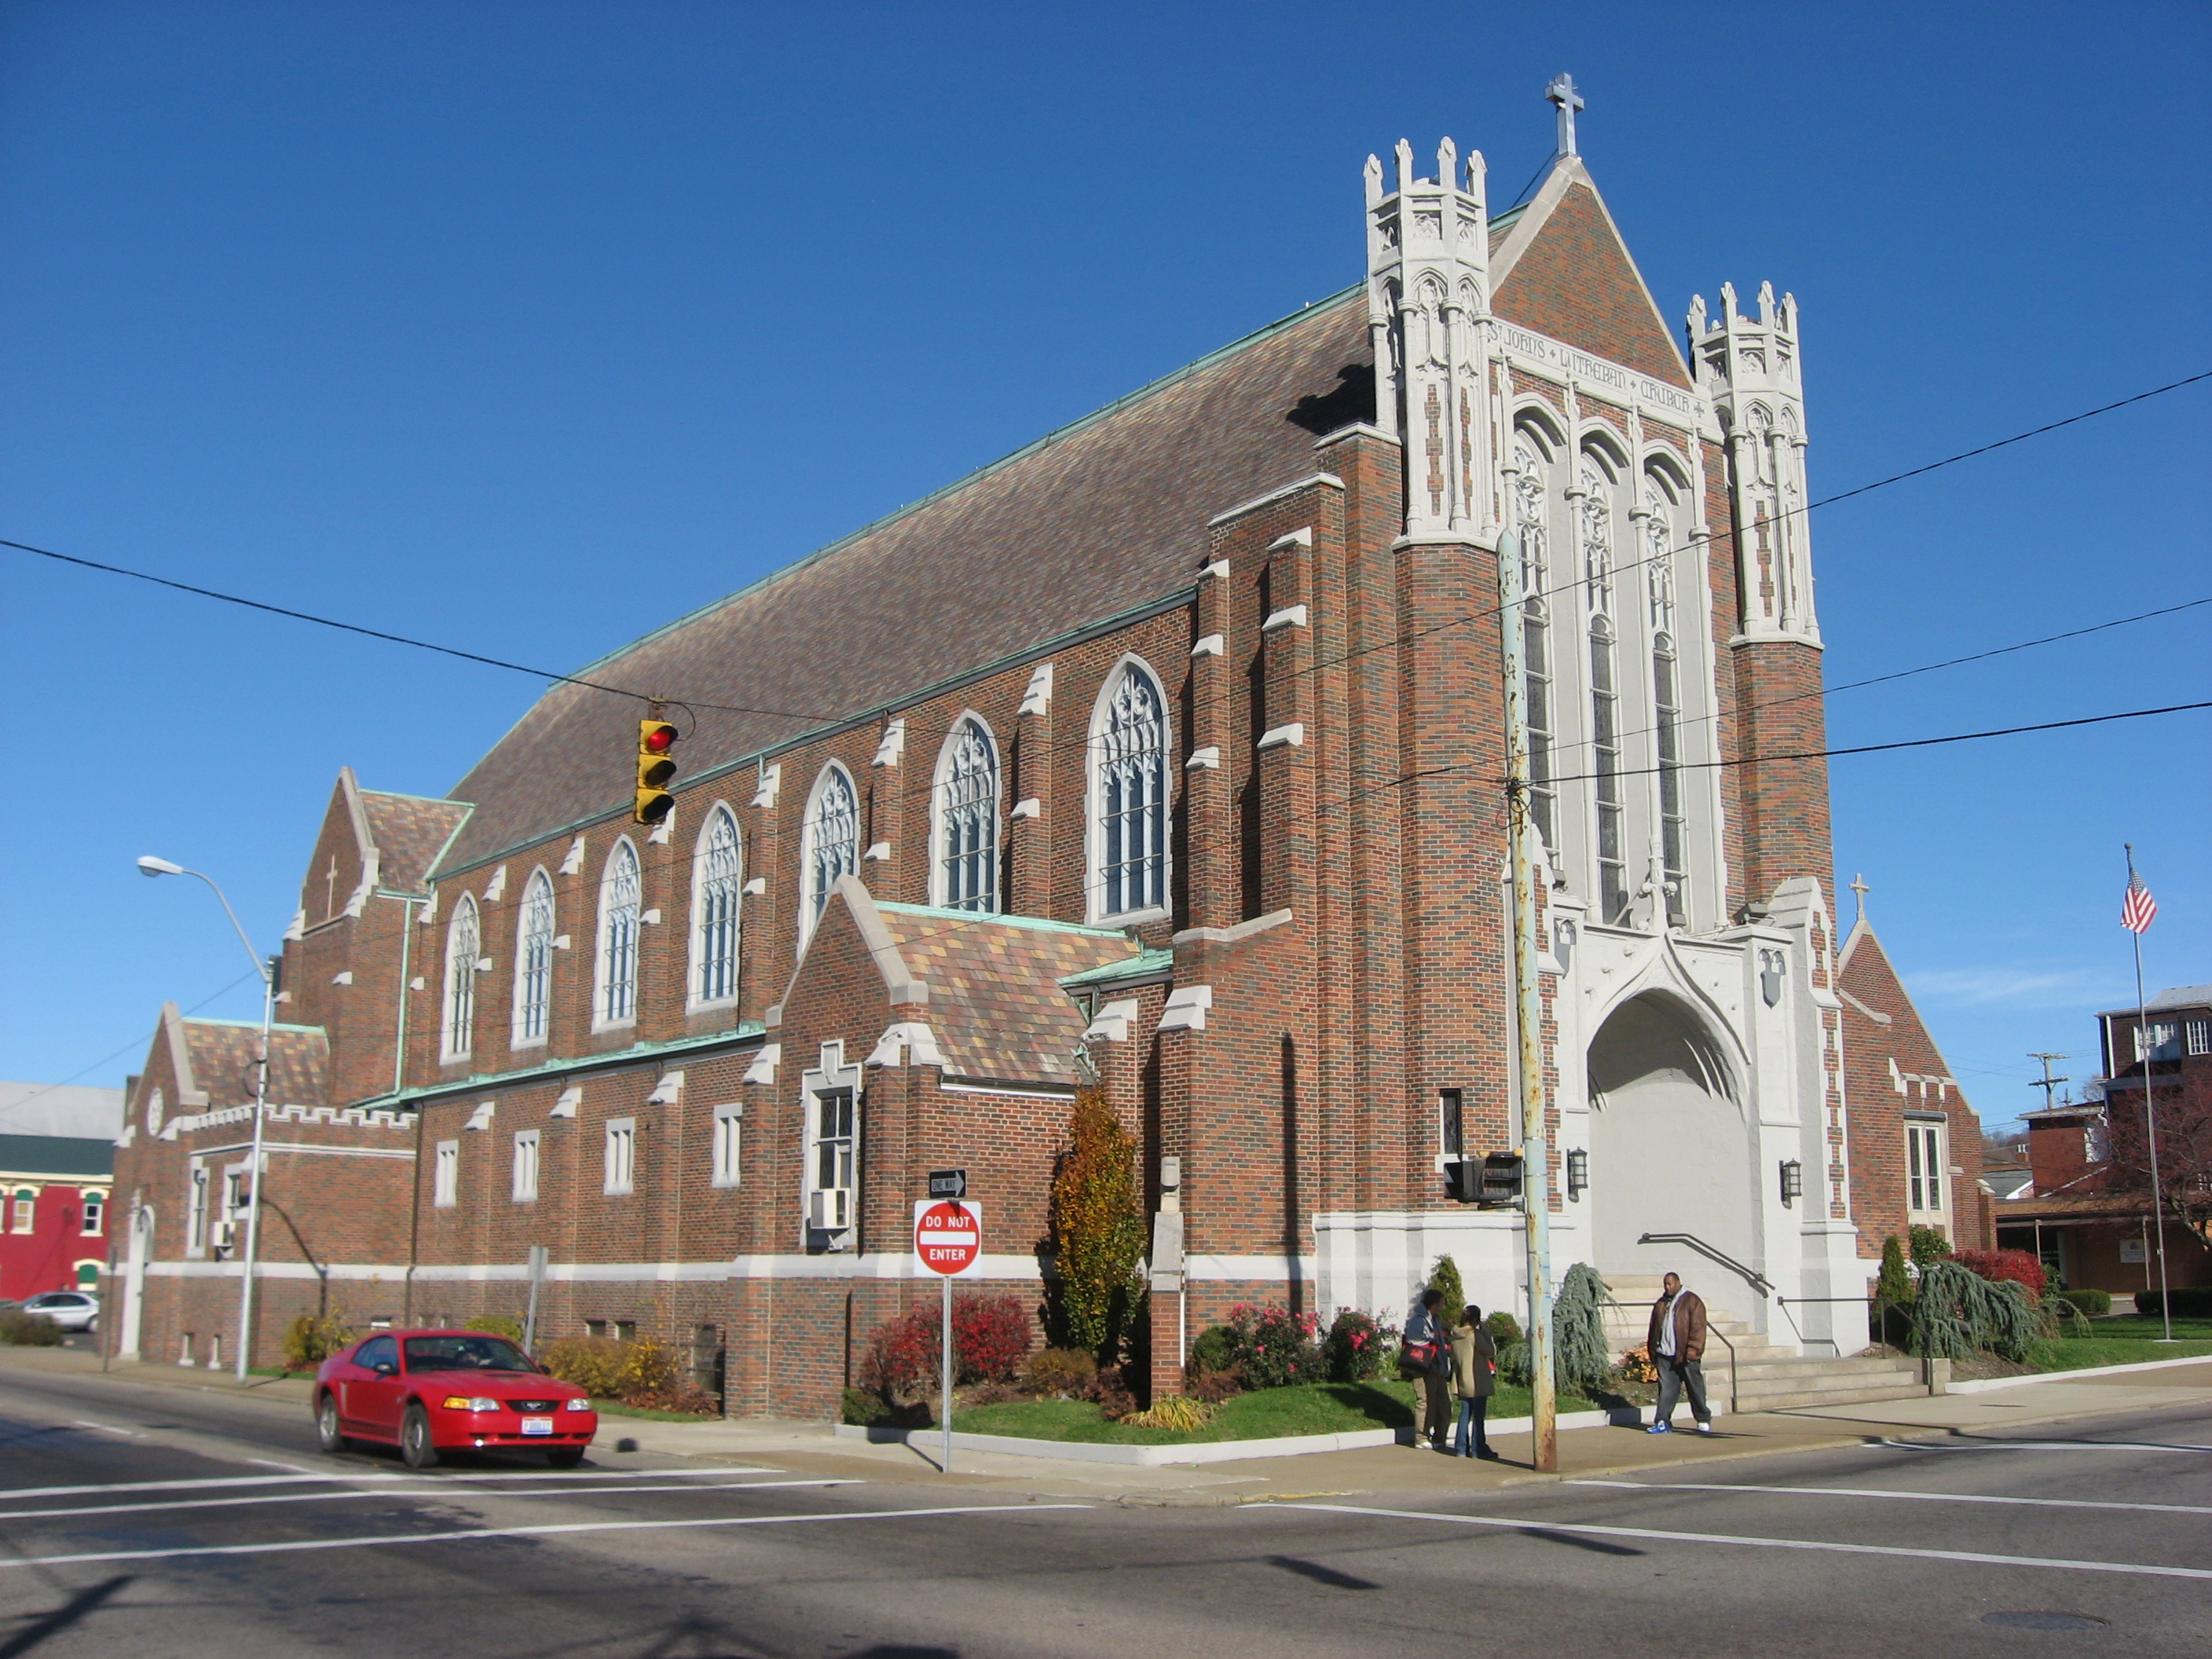 https://upload.wikimedia.org/wikipedia/commons/f/fd/St._John%27s_Lutheran_Church%2C_Zanesville.jpg